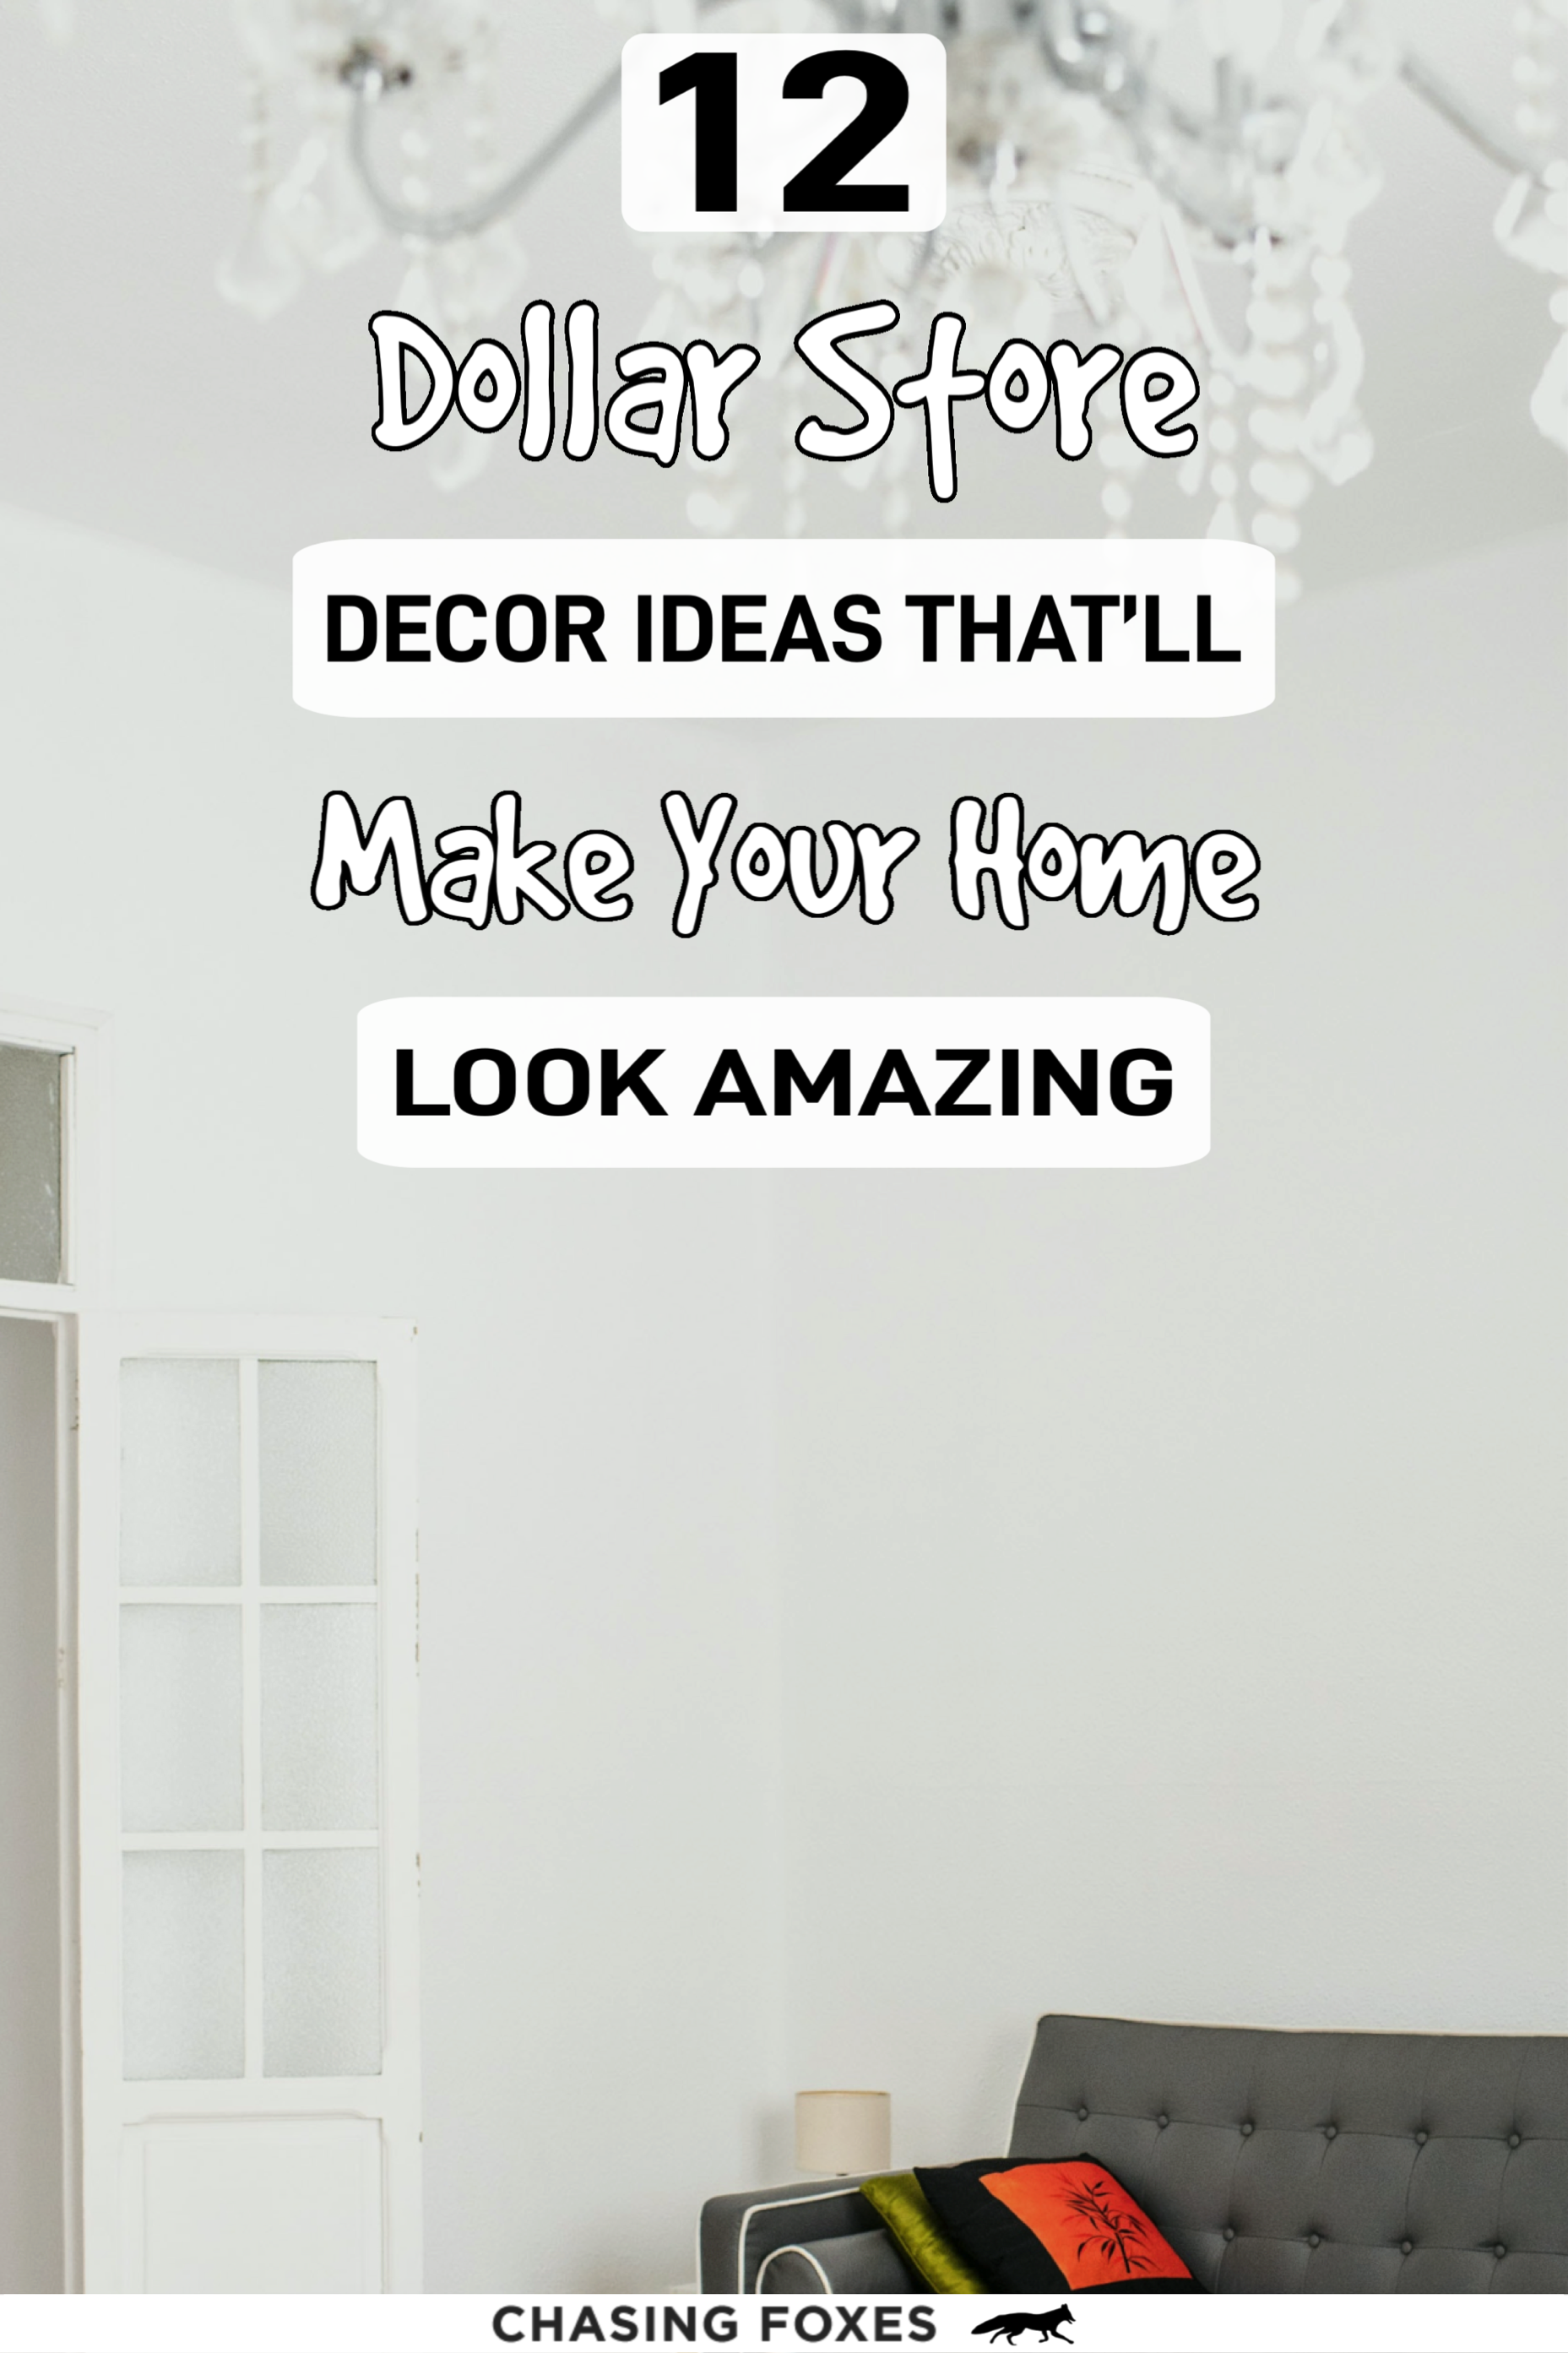 These 12 Dollar Store Decor Hacks are THE BEST! I'm so glad I found these GREAT home decor ideas and tips! Now I have great ways to decorate my home on a budget! #ChasingFoxes #DollarStore #DecorIdeas